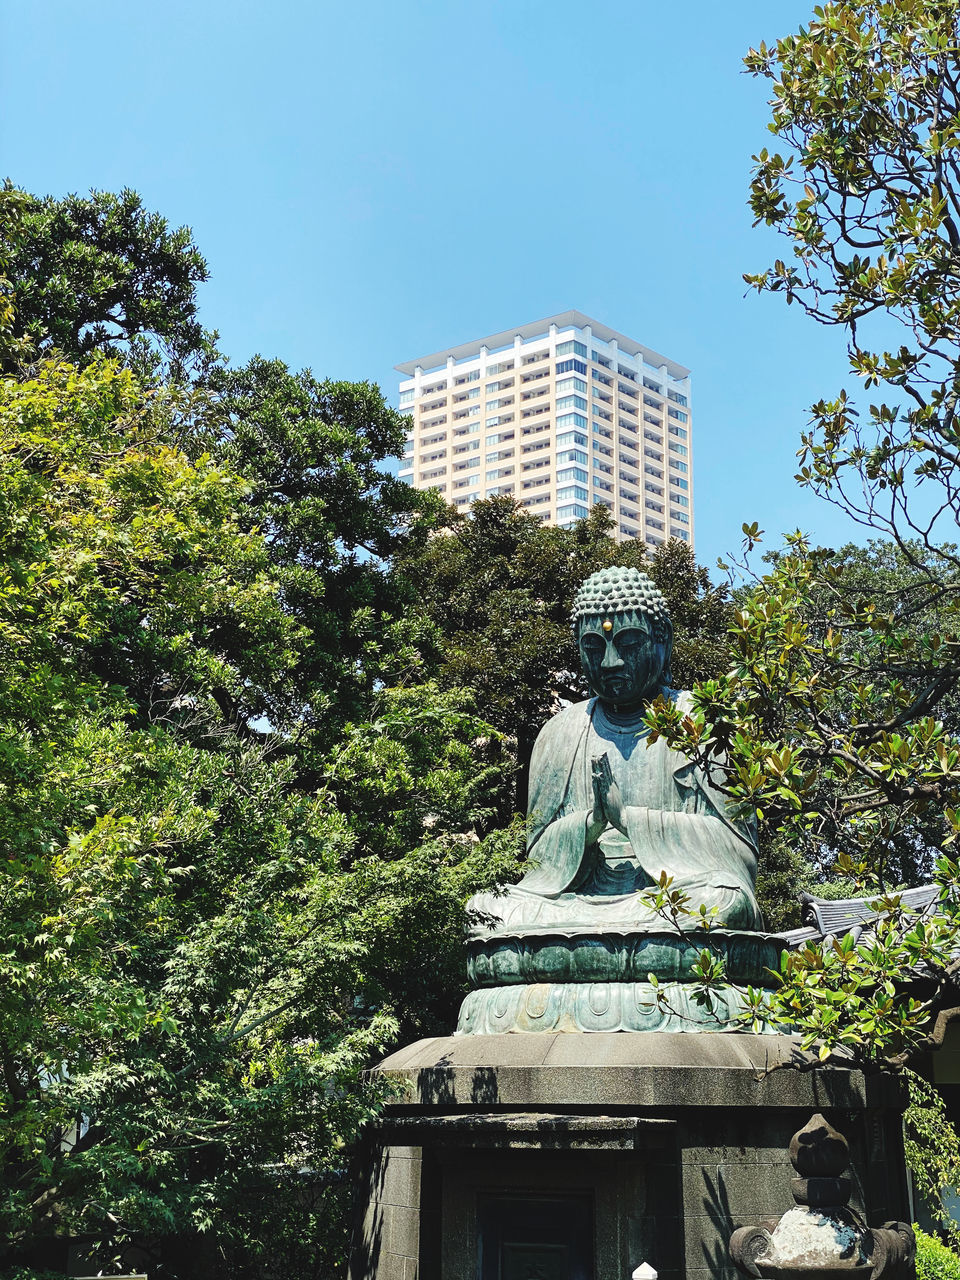 LOW ANGLE VIEW OF STATUE AGAINST BUILDING AND TREES